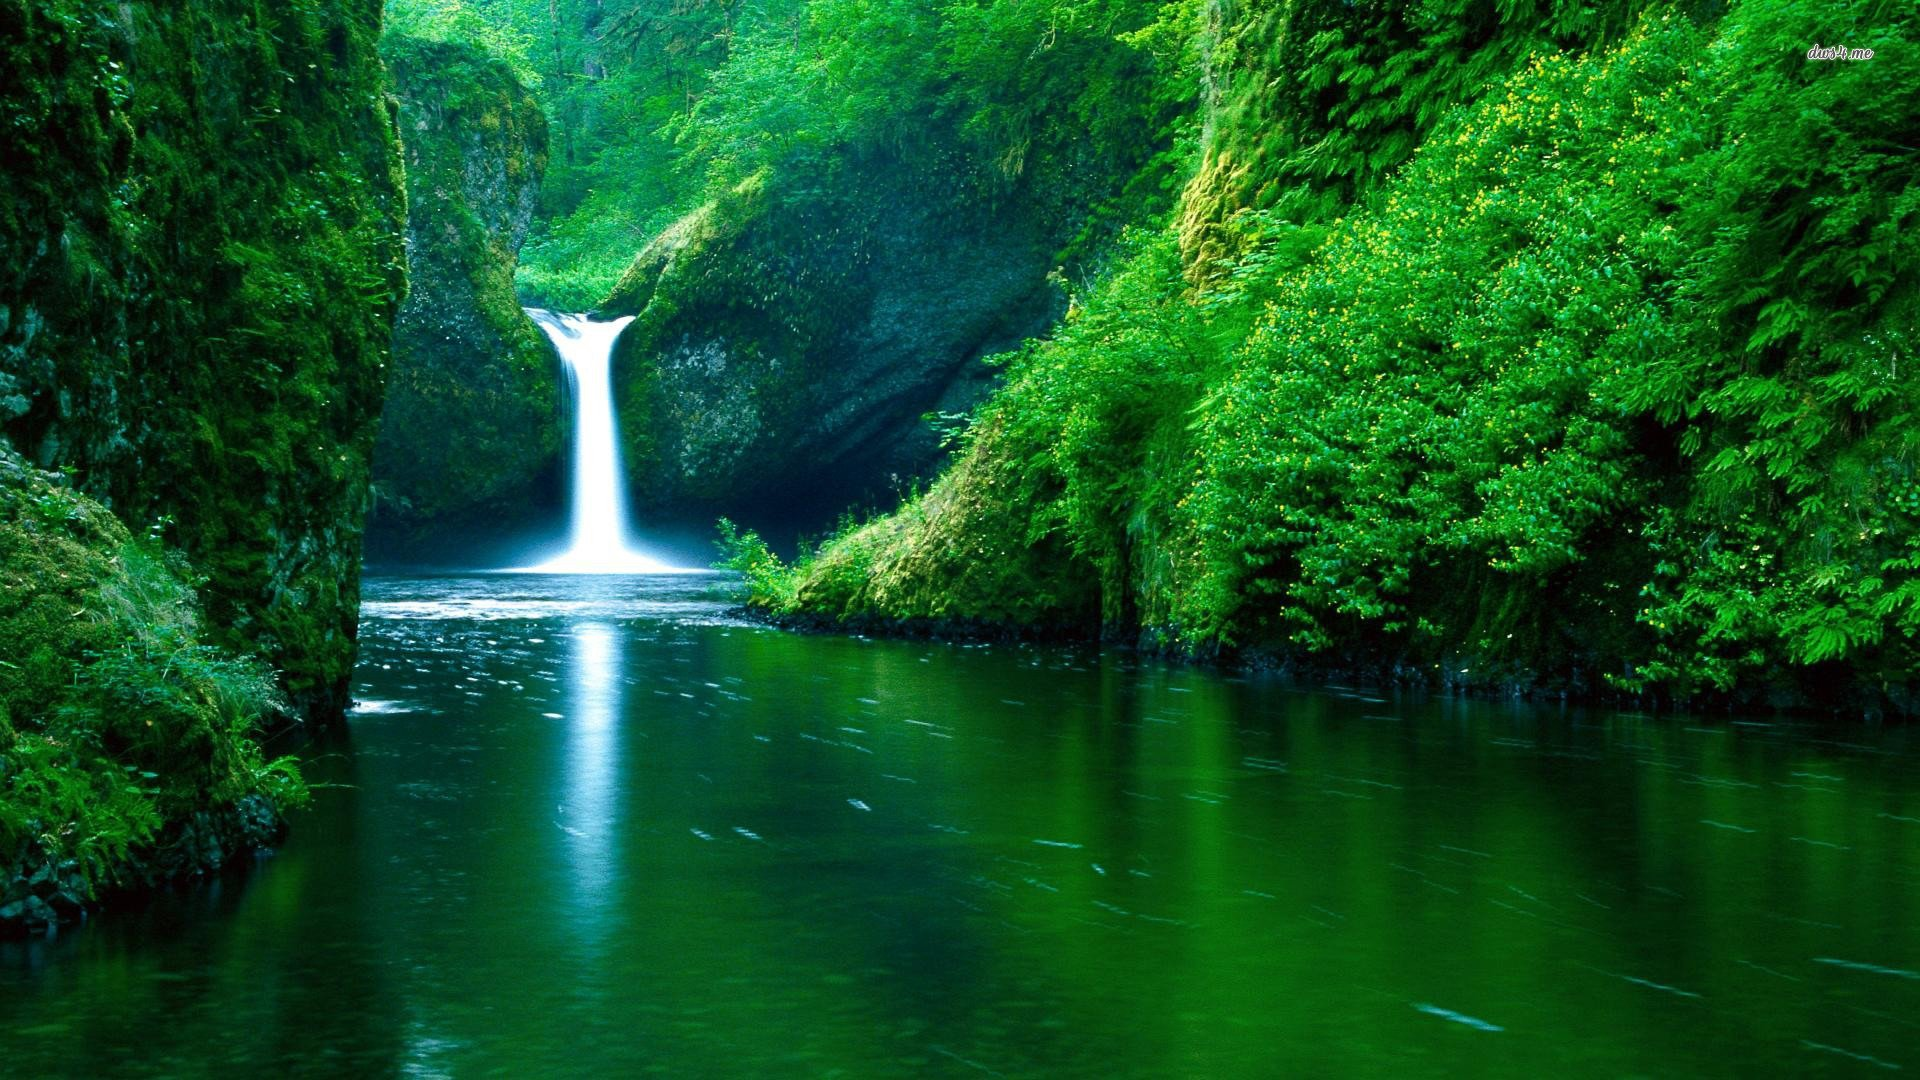 Cool Nature Background wallpaper 1920x1080 26984 1920x1080